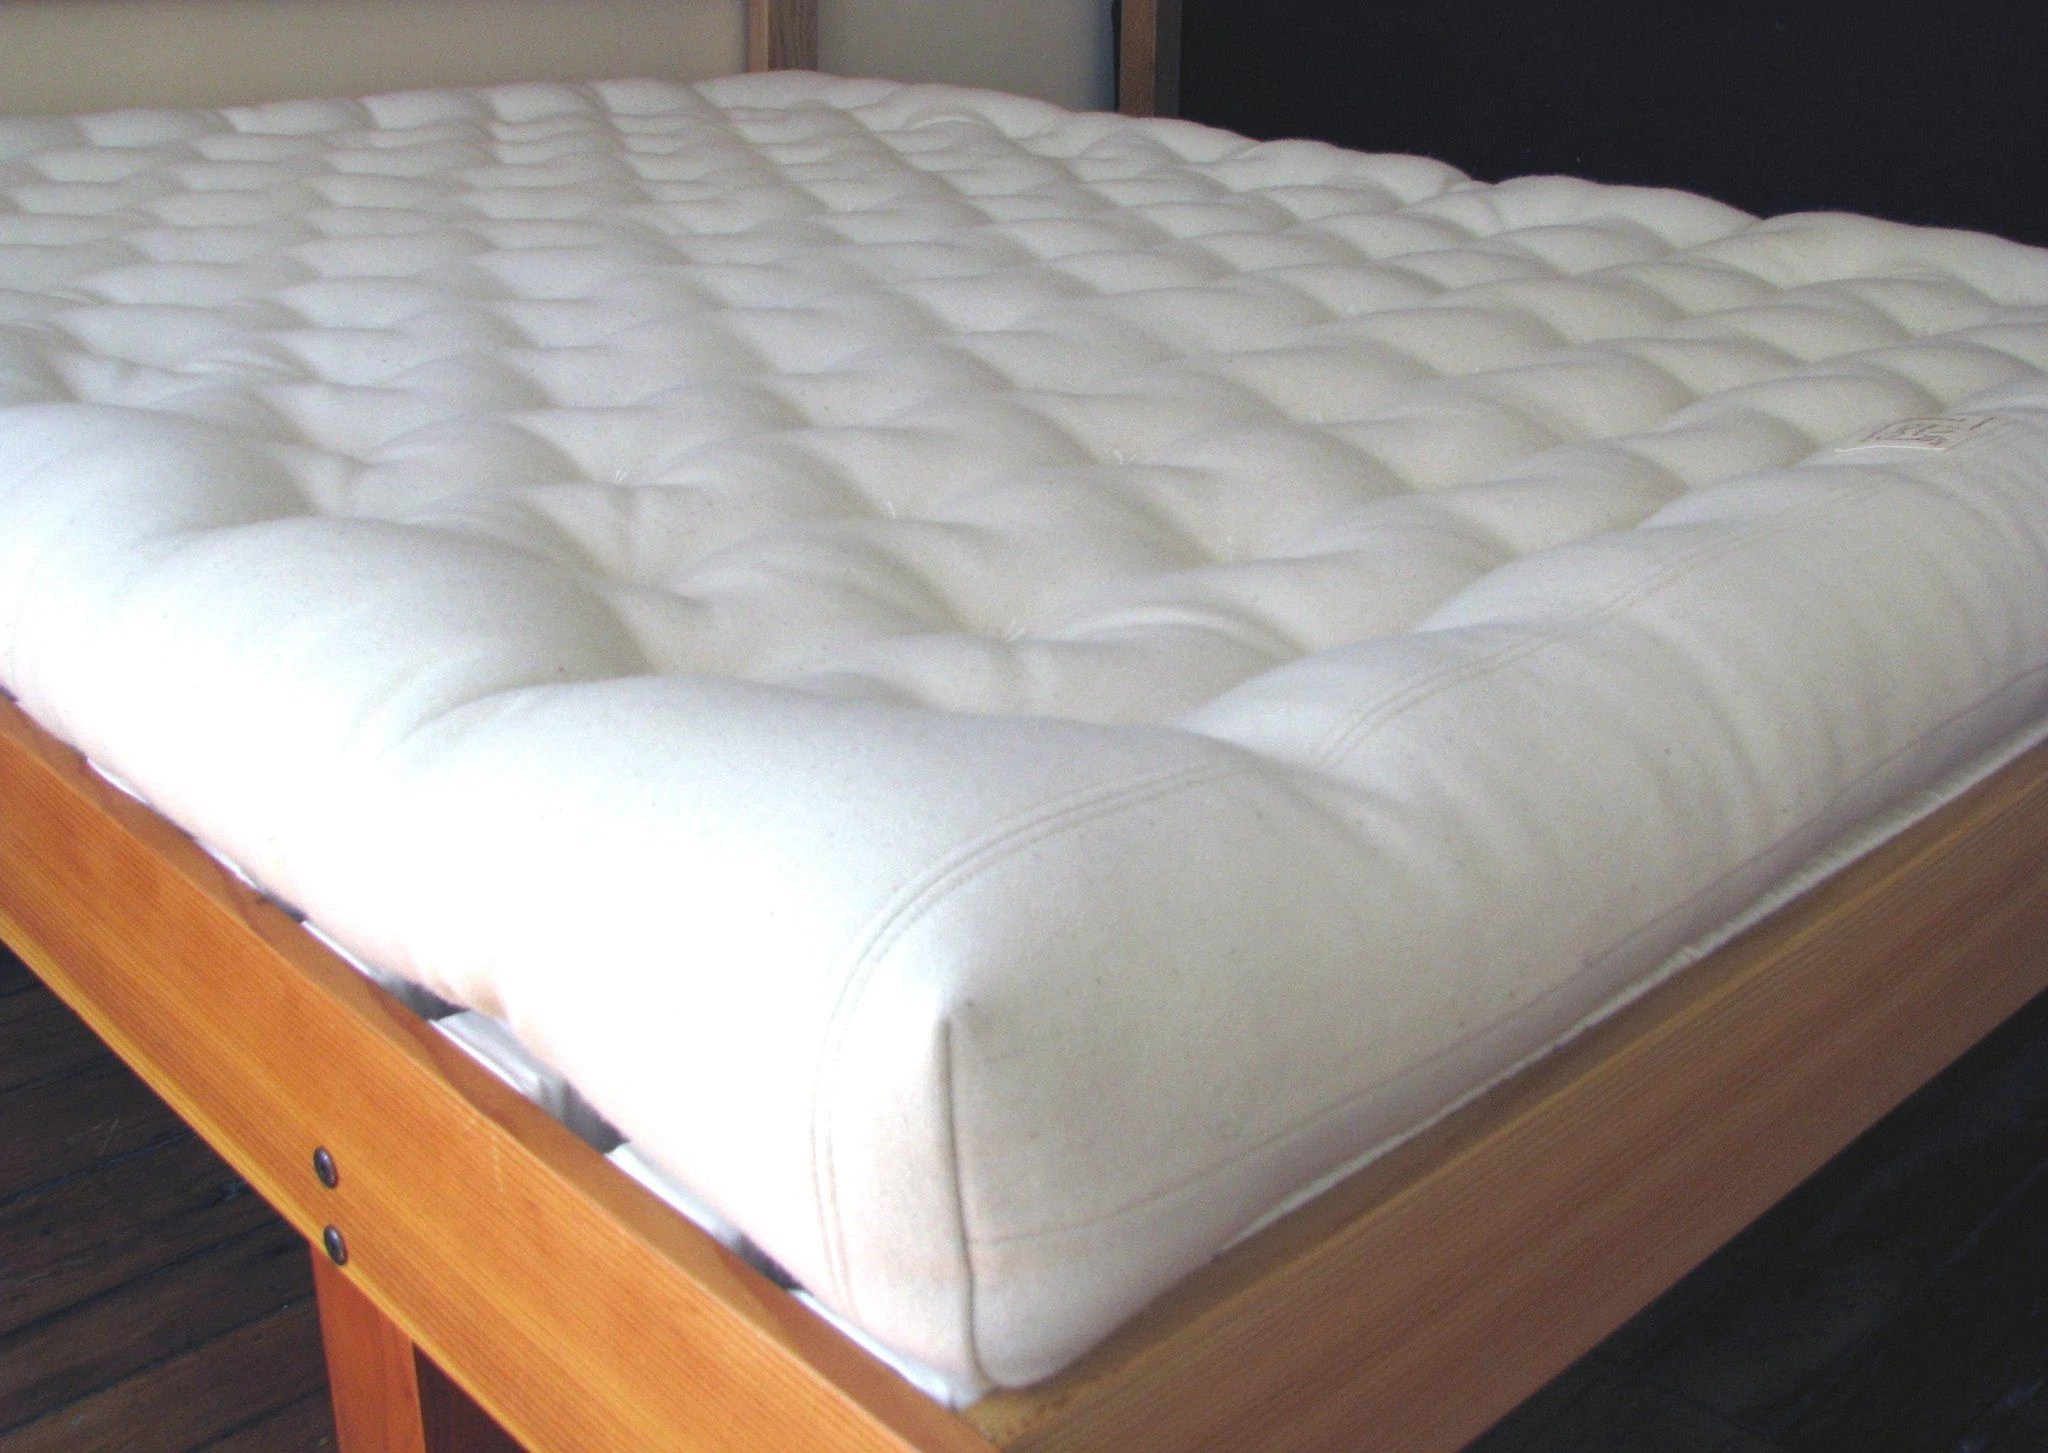 Wool Mattress Pad Reviews All Wool Natural Mattress Organic Woolen Mattress Green Eco